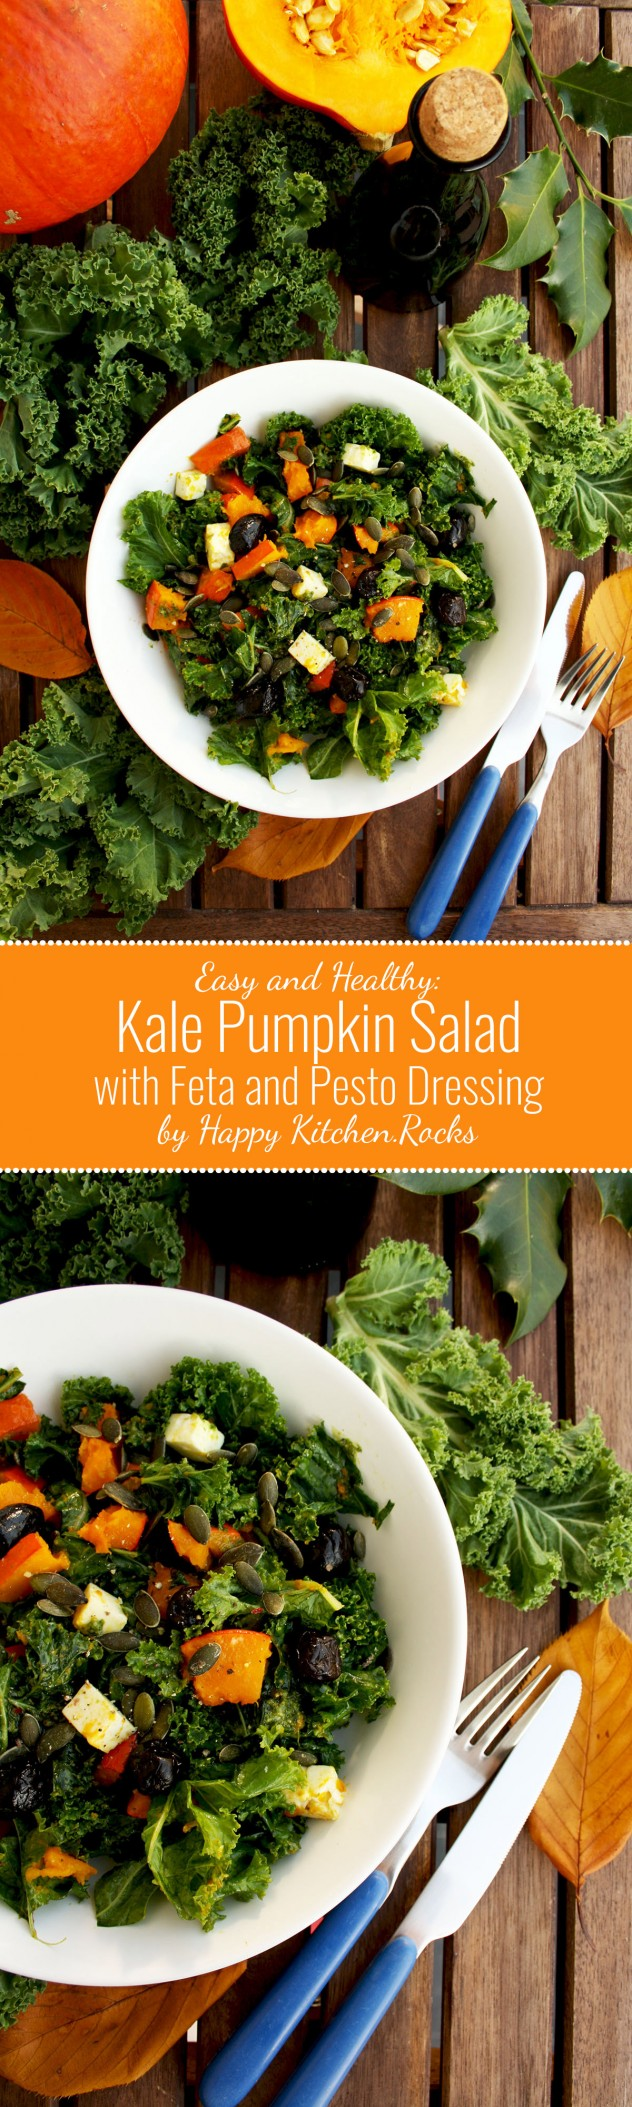 Kale Pumpkin Salad with Feta and Pesto Dressing - Super Long Collage of Two Images and Text Overlay